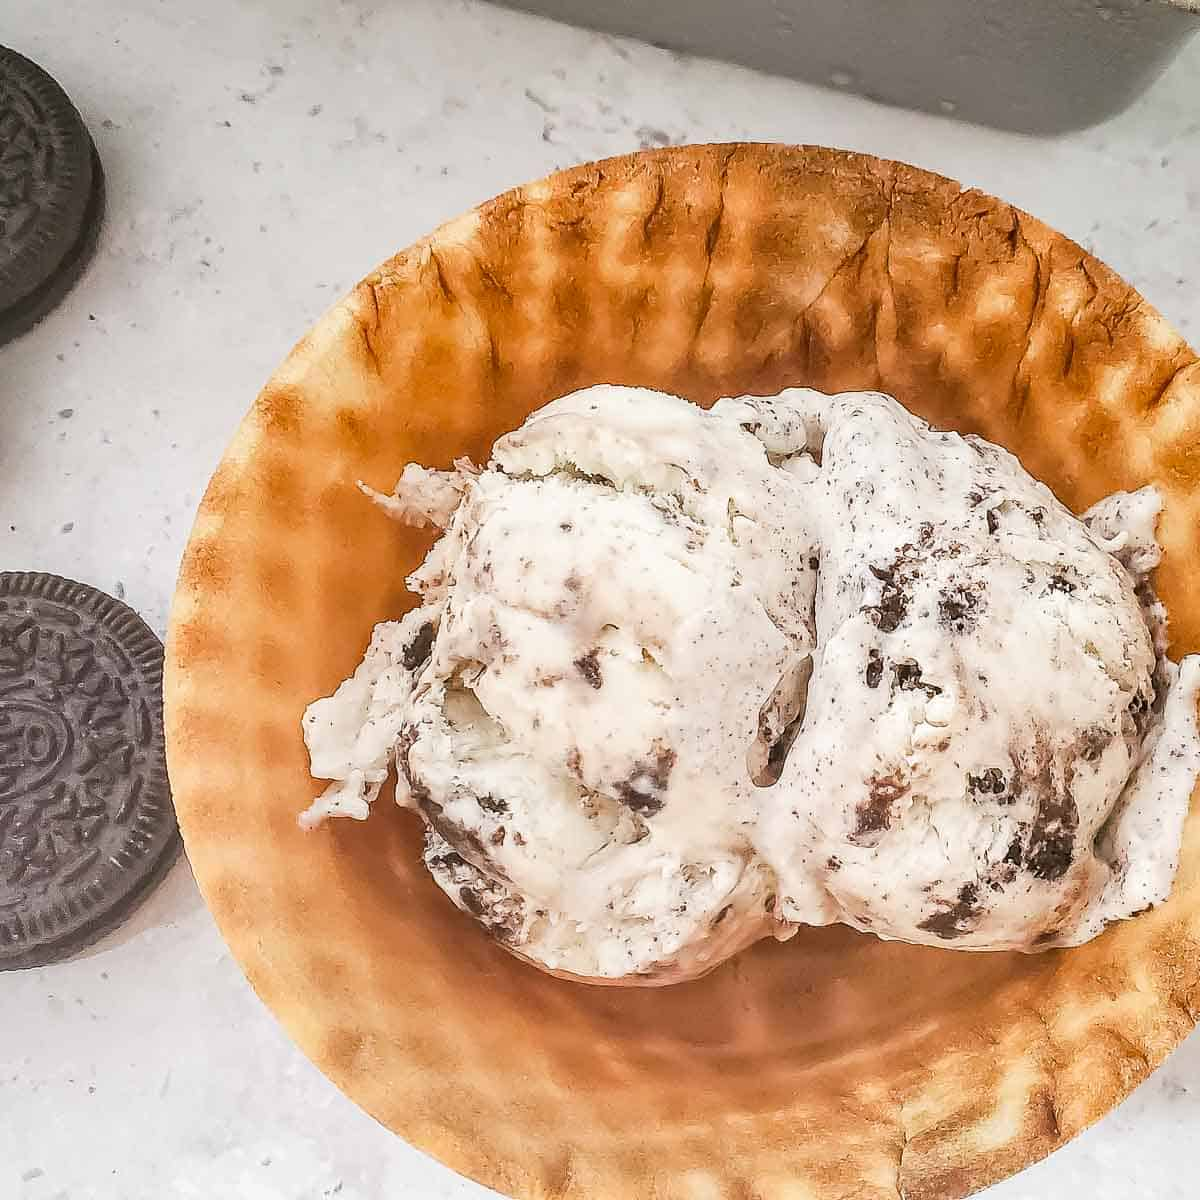 Overhead close up shot of ice cream in a waffle cone bowl on a white marble surface with Oreos and a metal pan in the background.